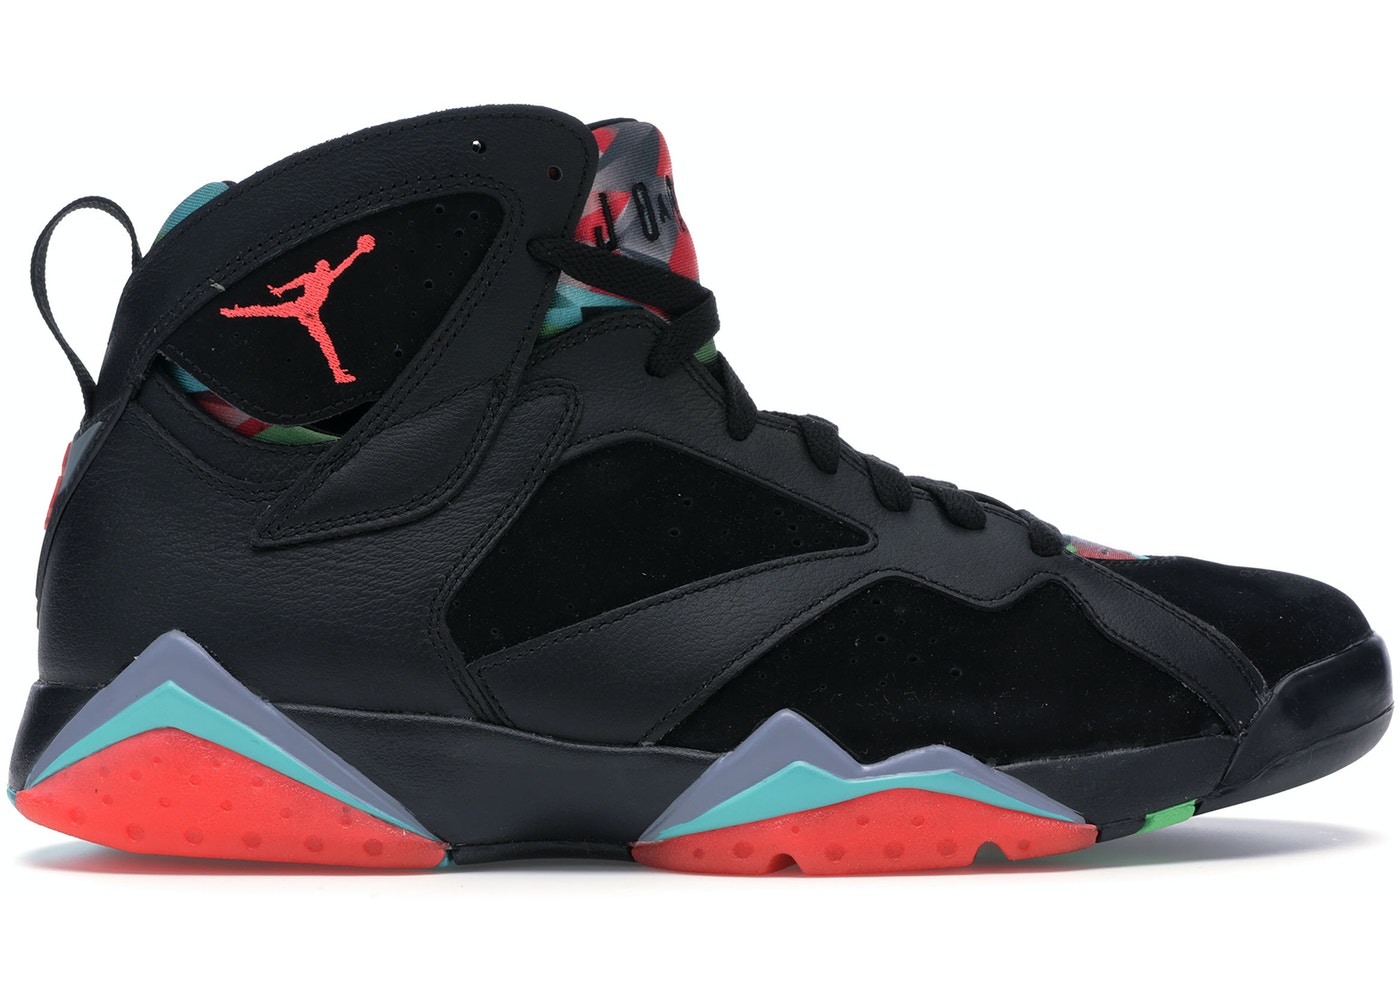 outlet store 68d24 50765 Buy Air Jordan 7 Shoes   Deadstock Sneakers